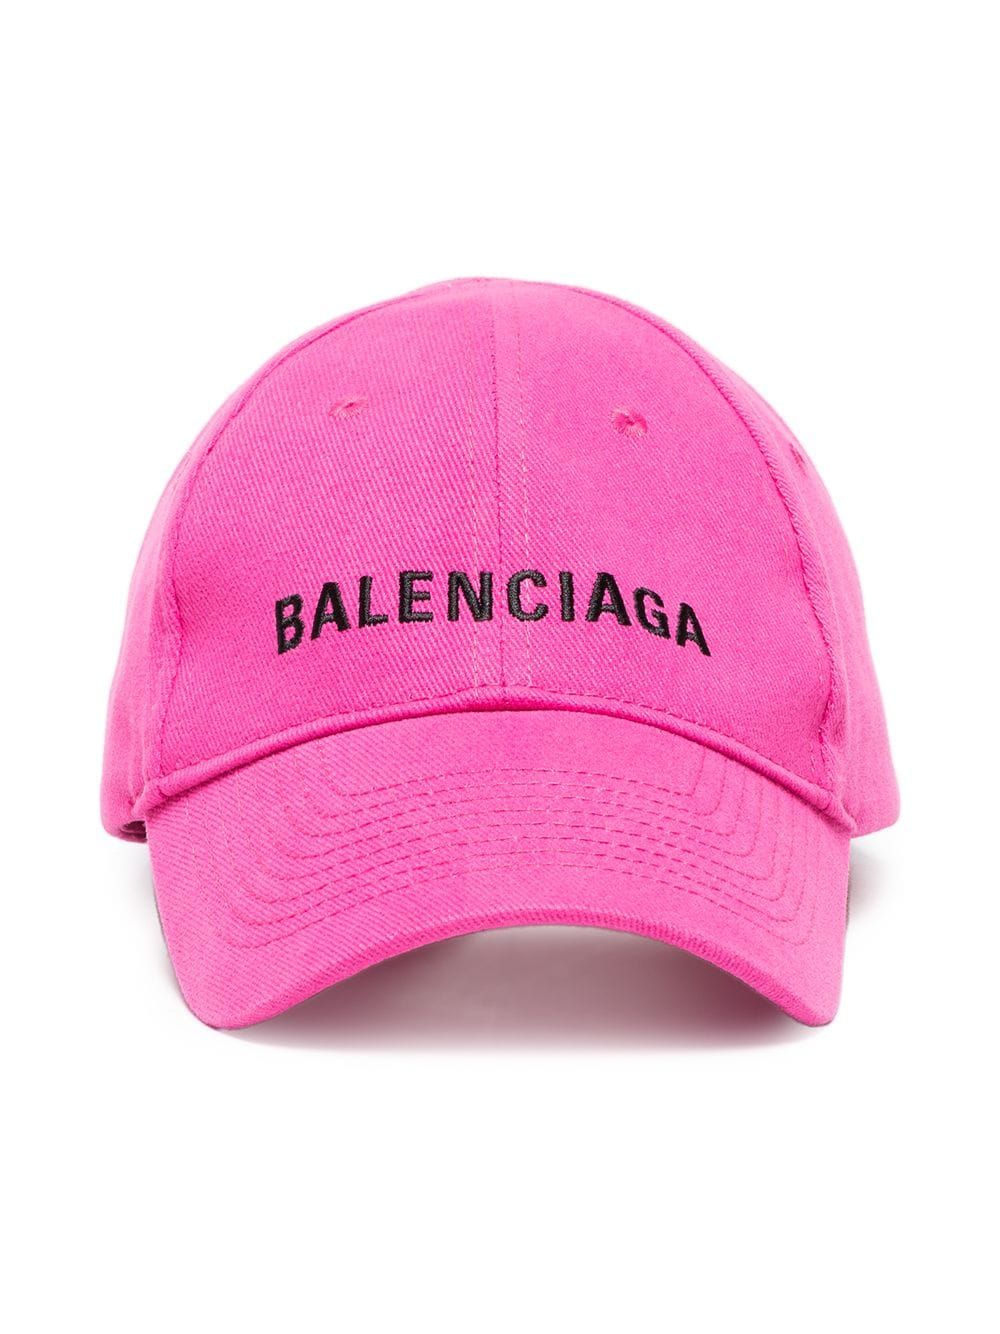 101c08ac Balenciaga Pink Logo Embroidered Cap in 2019   Products ...